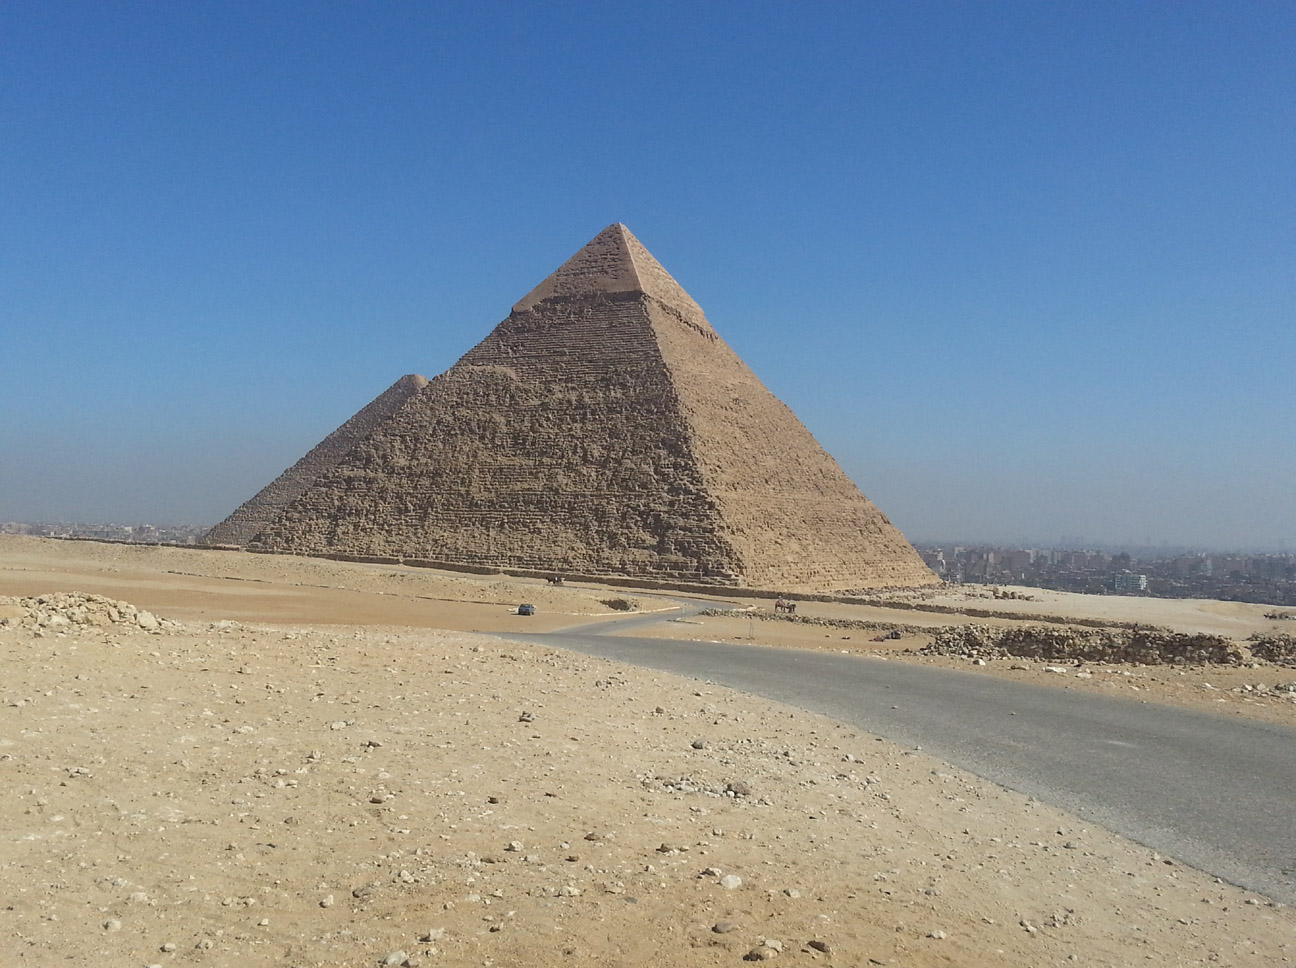 Second largest Pyramid in Giza